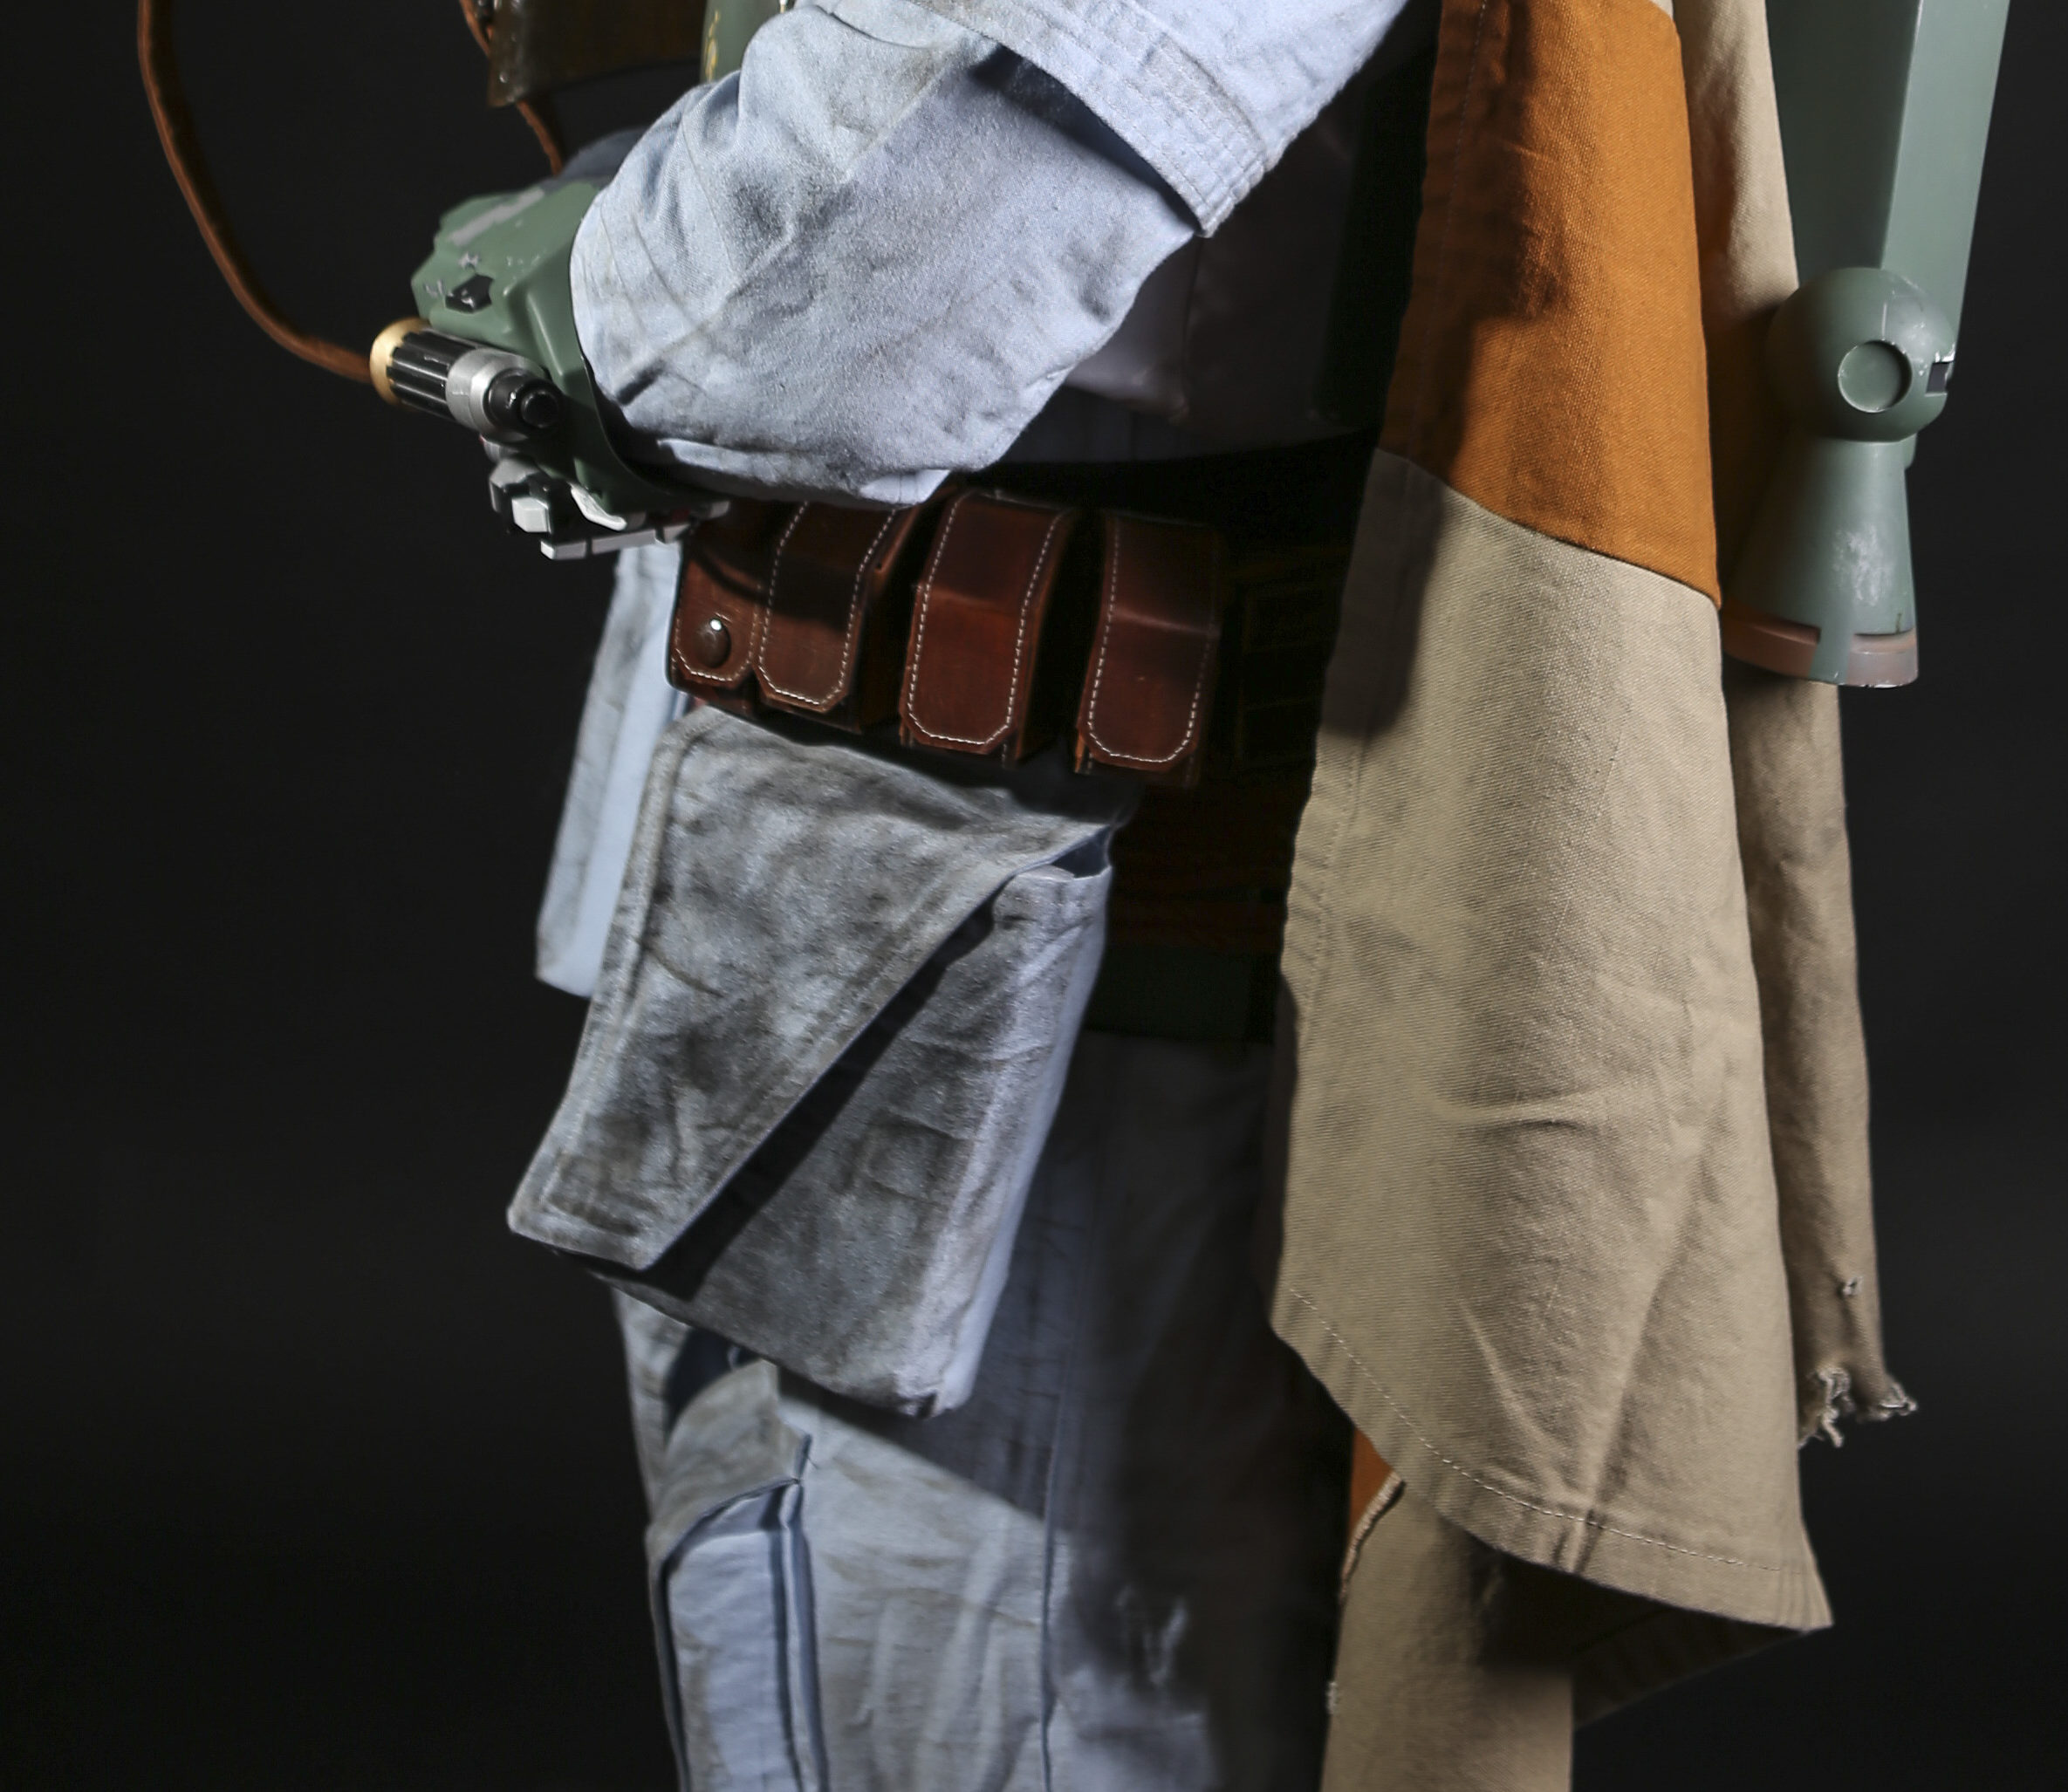 Close up of the Boba Fett hip pouch